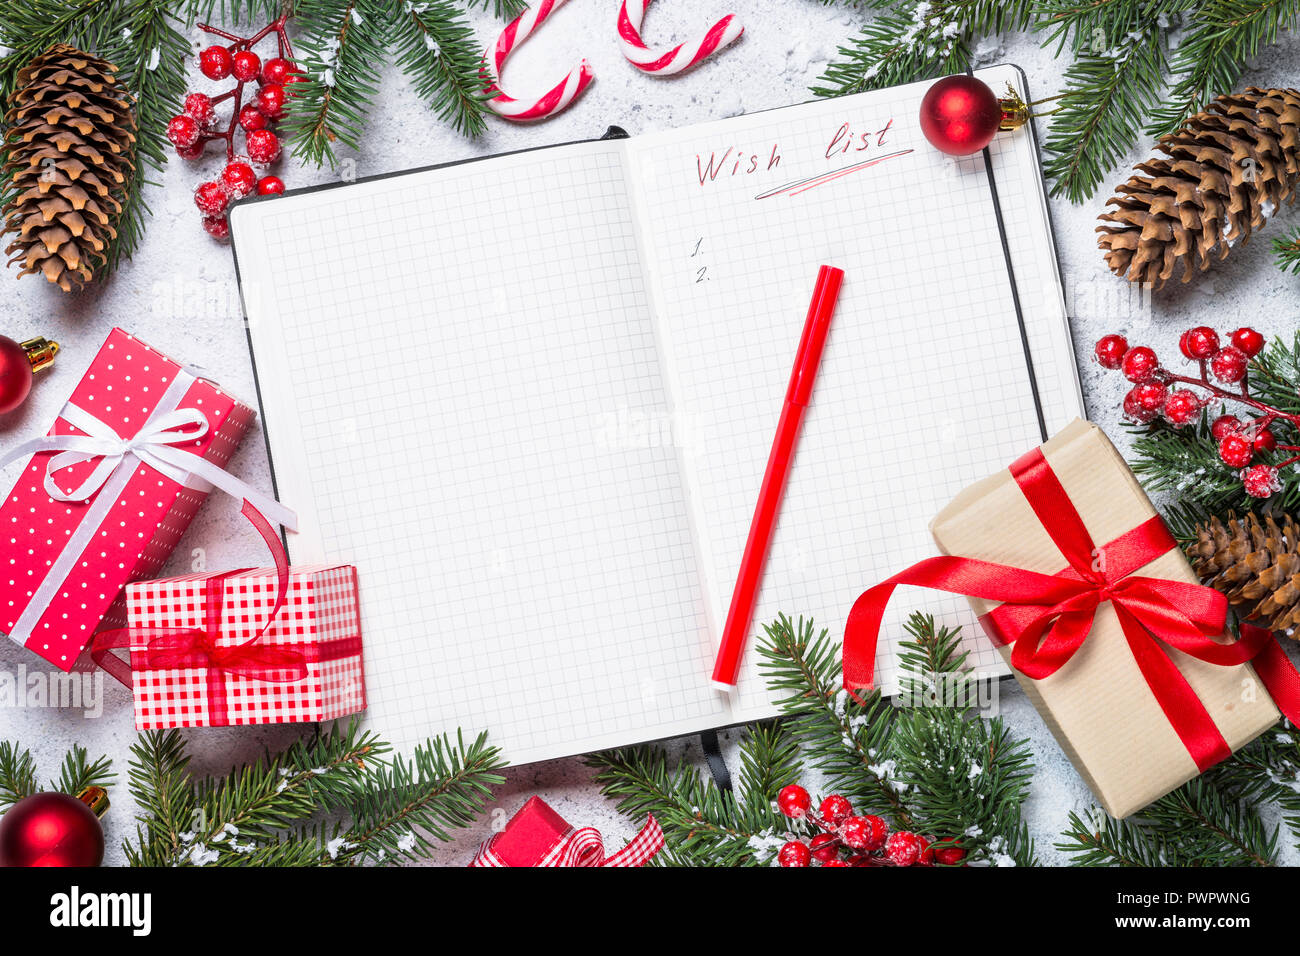 Wish list for christmas with christmas decorations - Stock Image